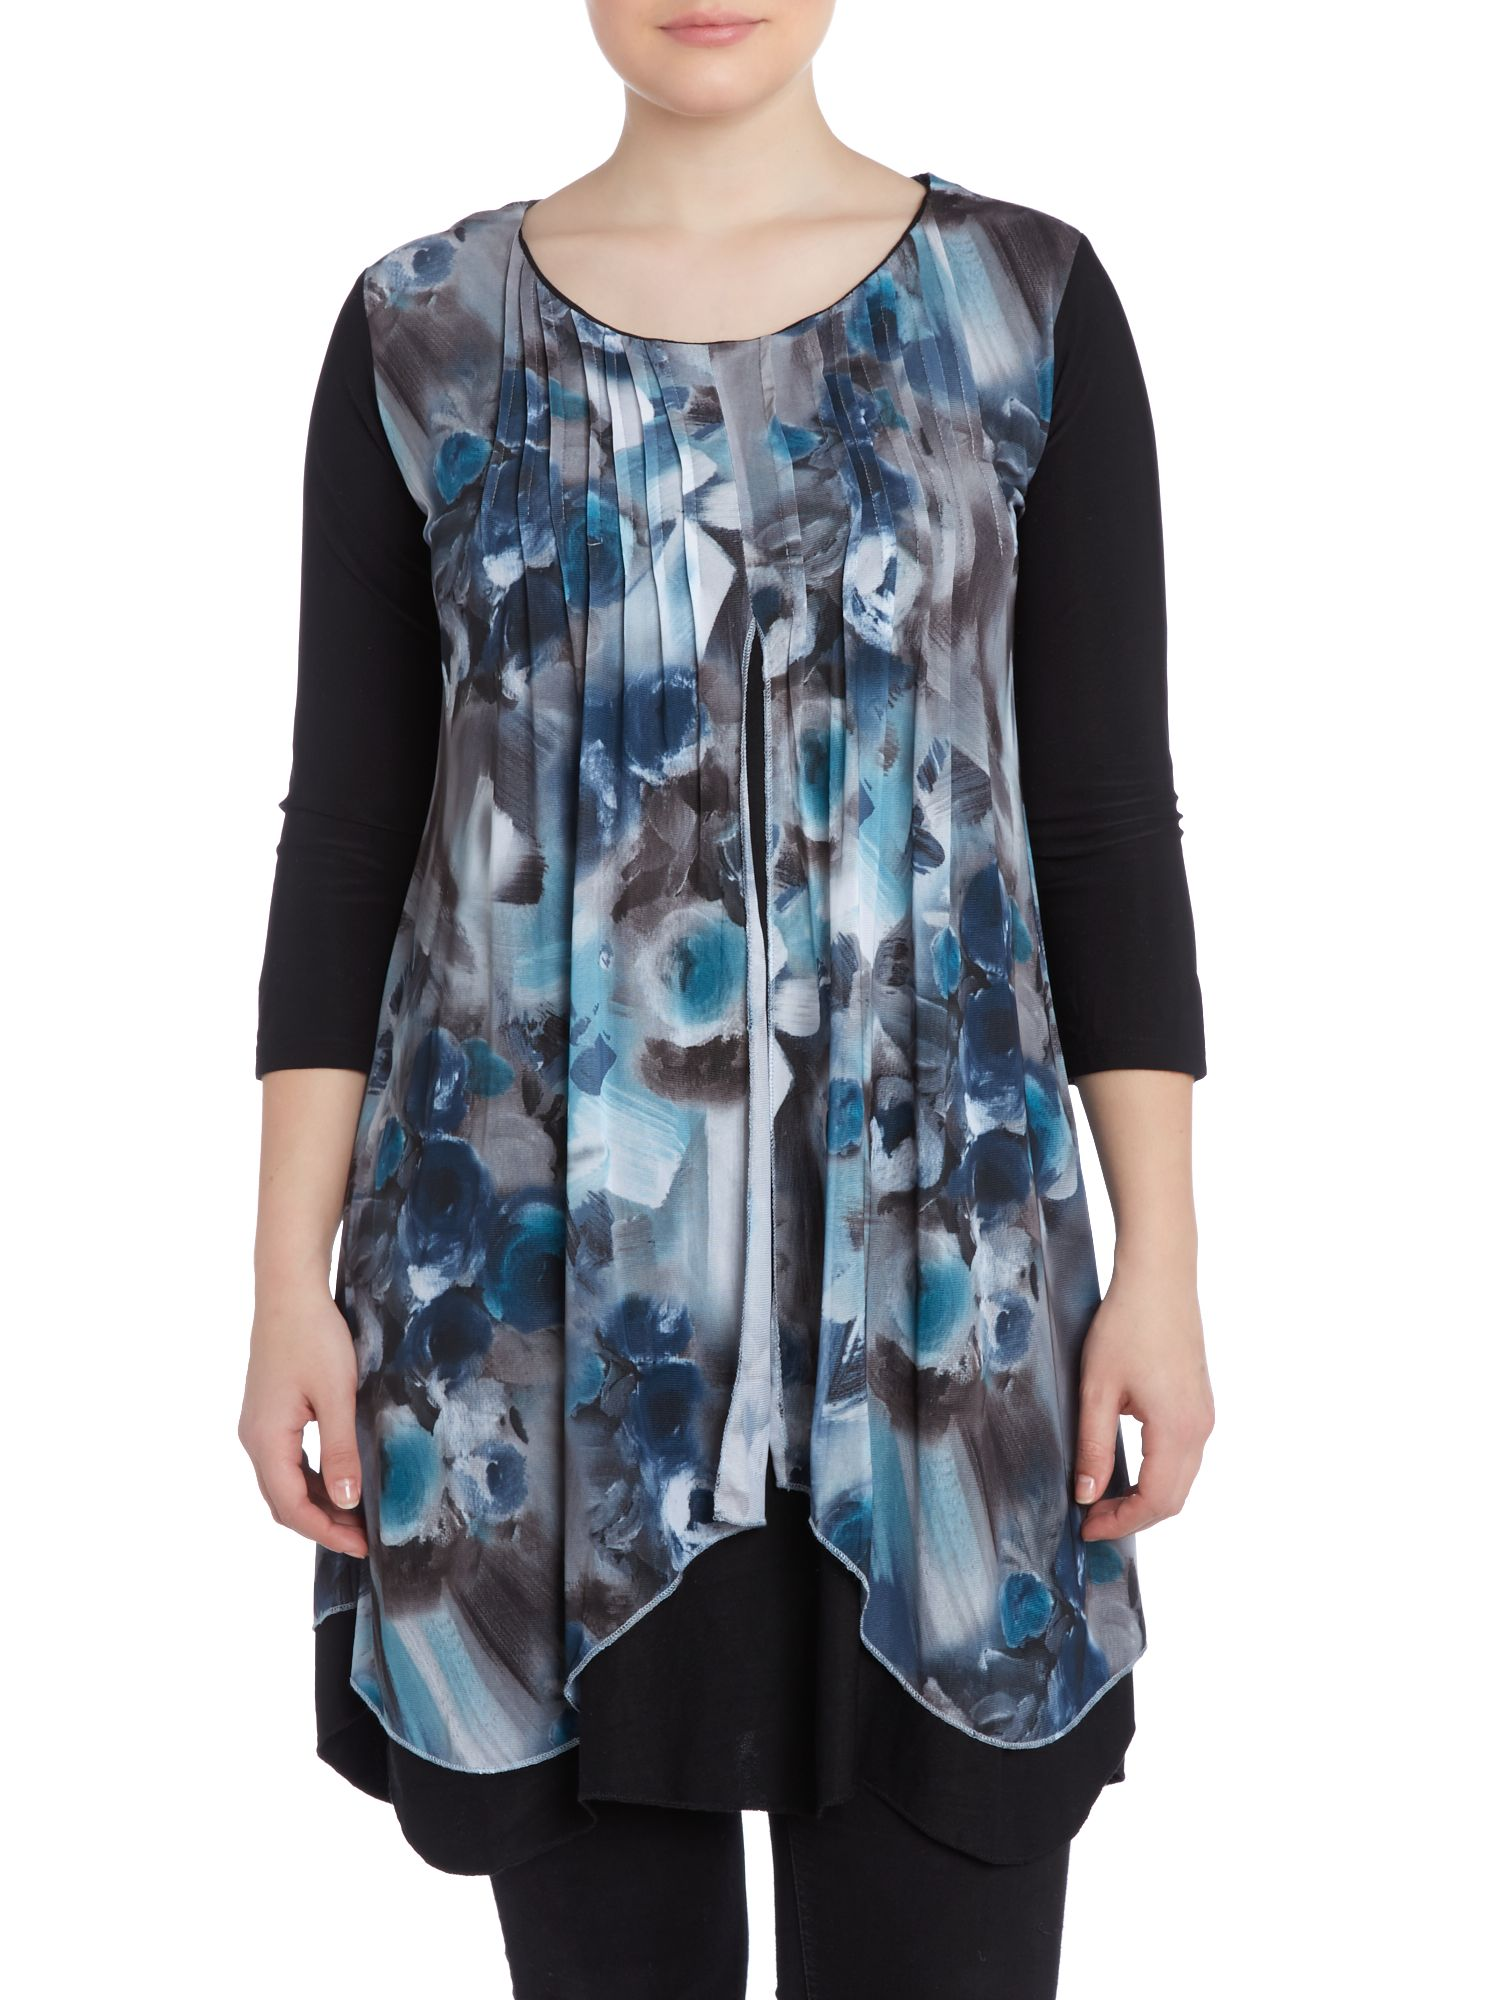 Contrast drape neck print top